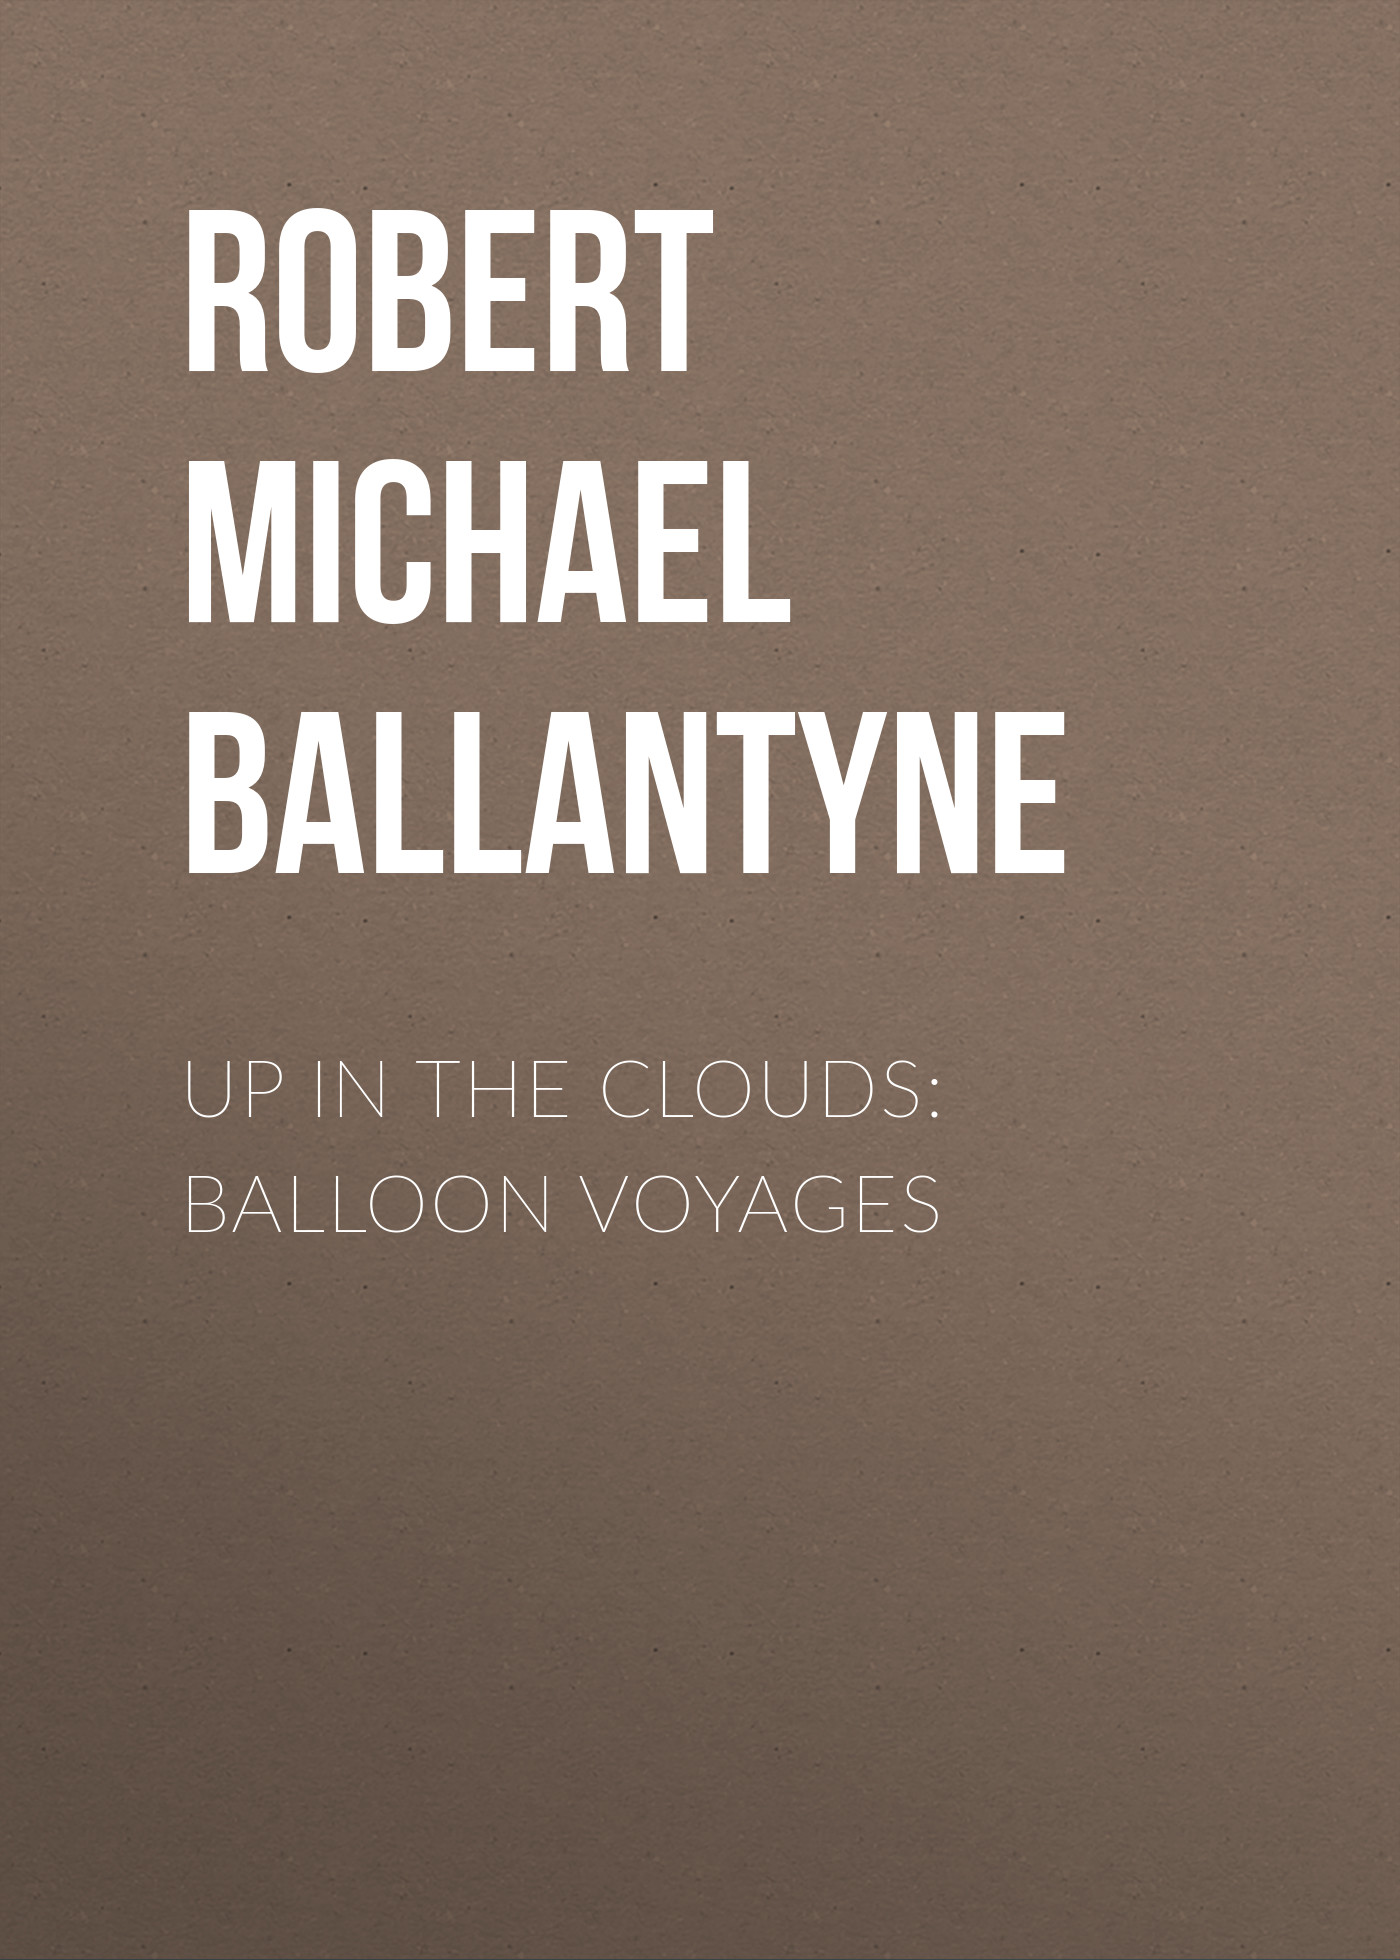 Robert Michael Ballantyne Up in the Clouds: Balloon Voyages